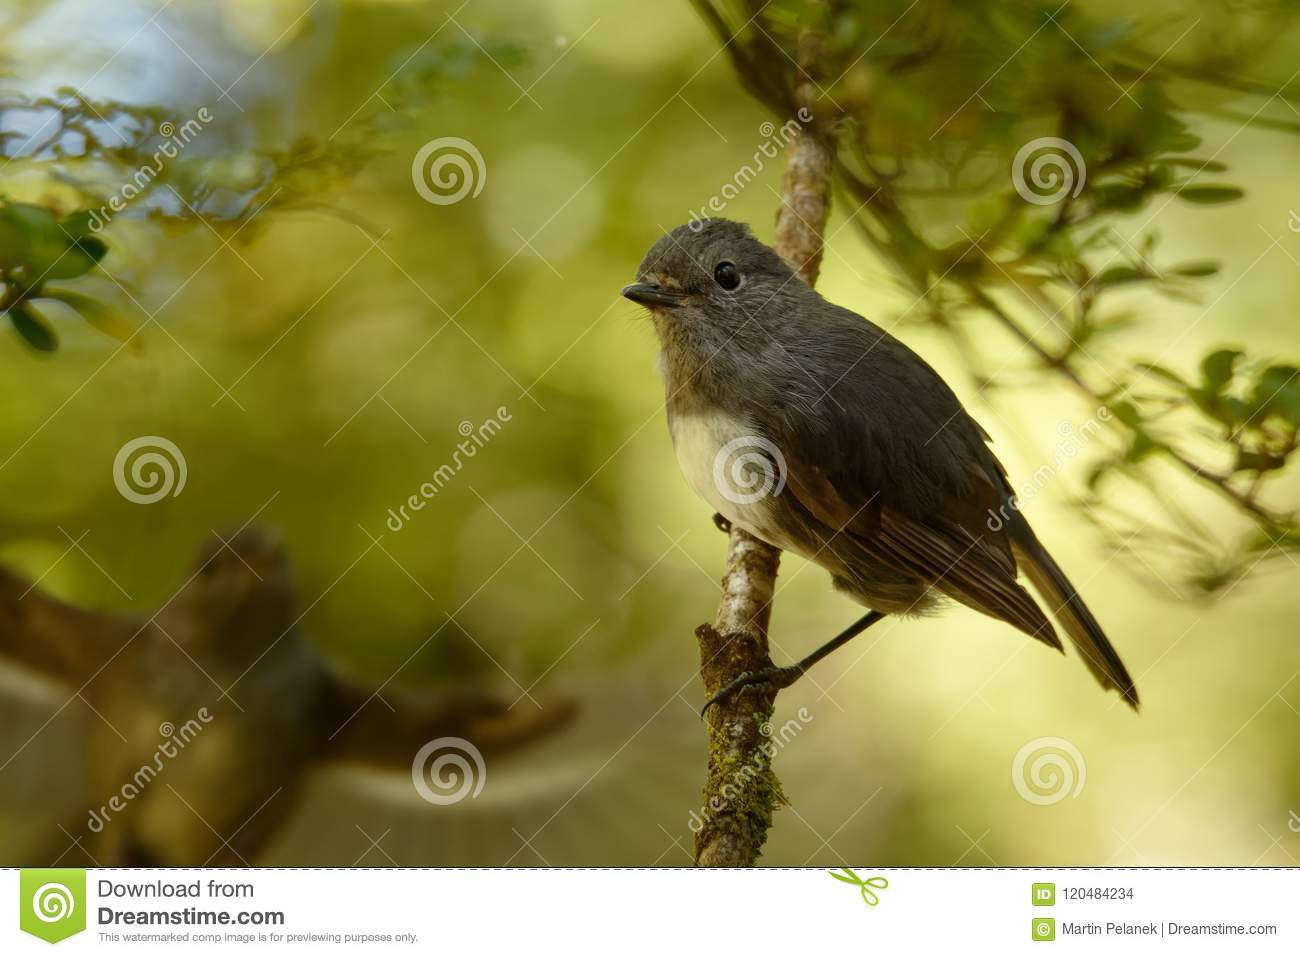 Petroica australis - South Island Robin - toutouwai - endemic New Zealand forest bird sitting on the branch in the forest